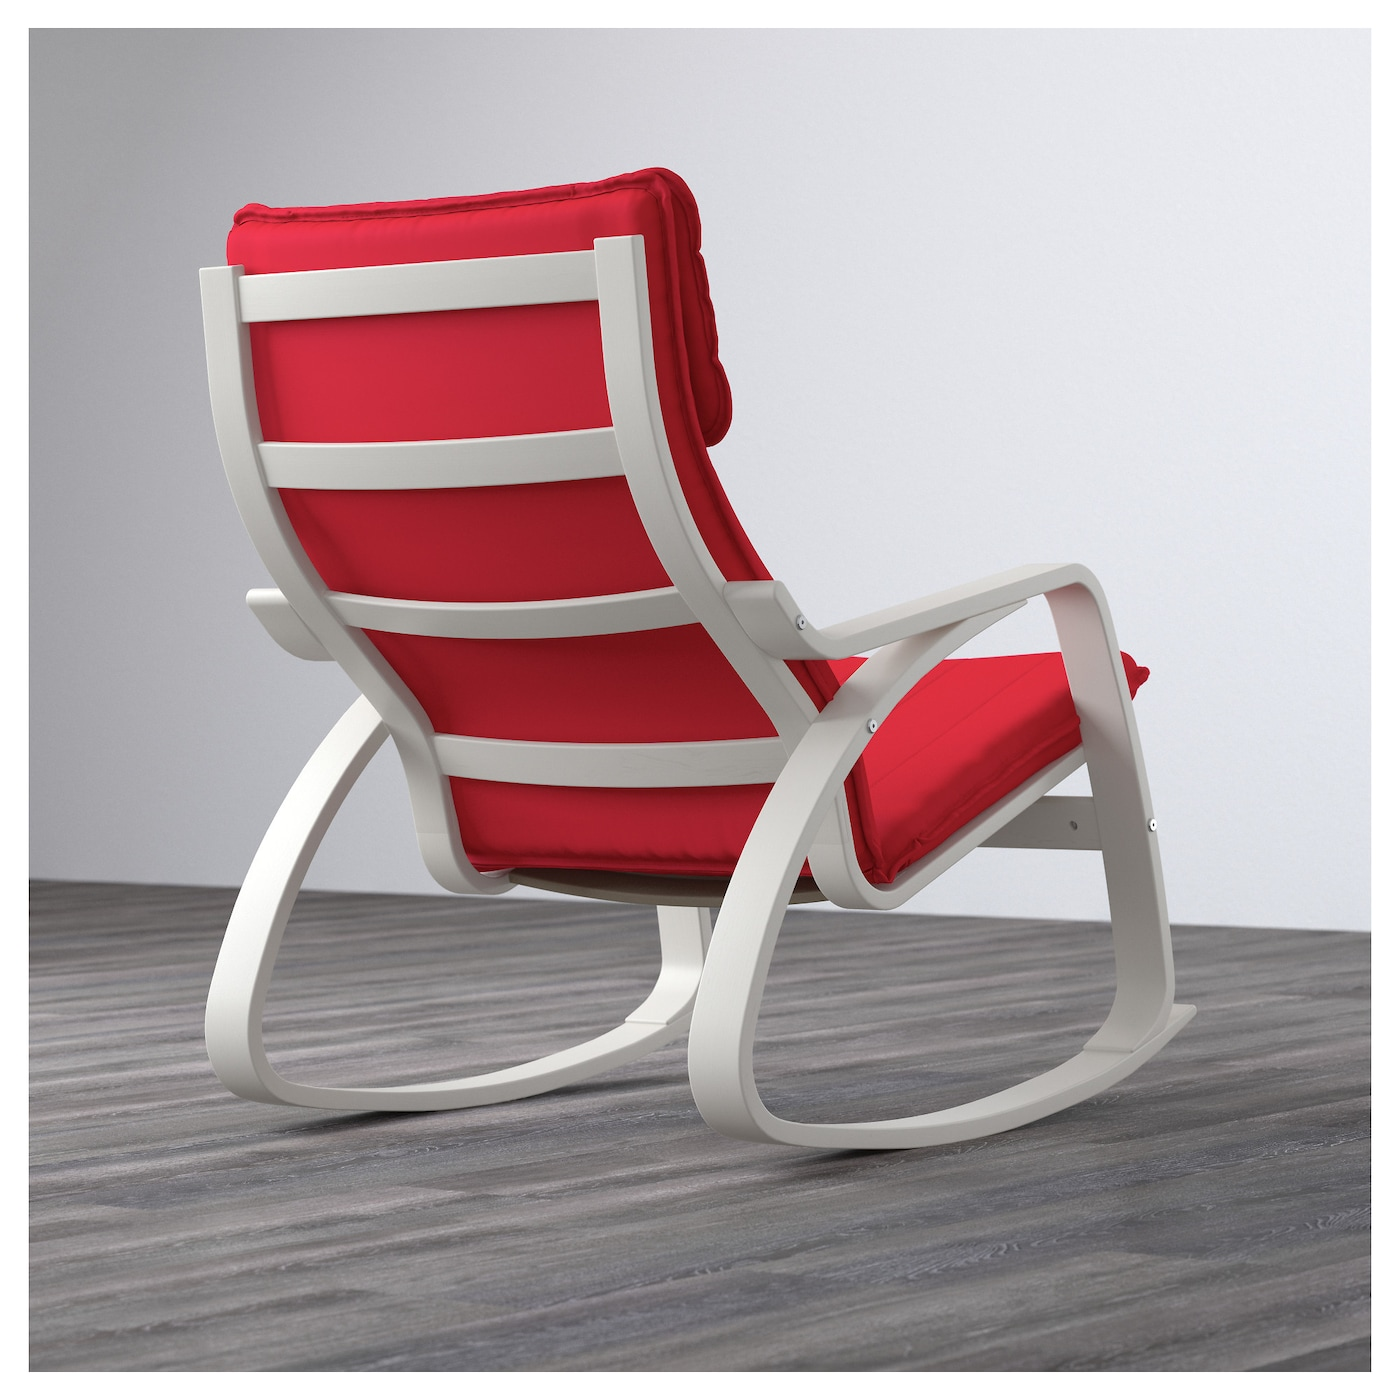 IKEA POÄNG rocking-chair Layer-glued bent birch frame gives comfortable resilience.